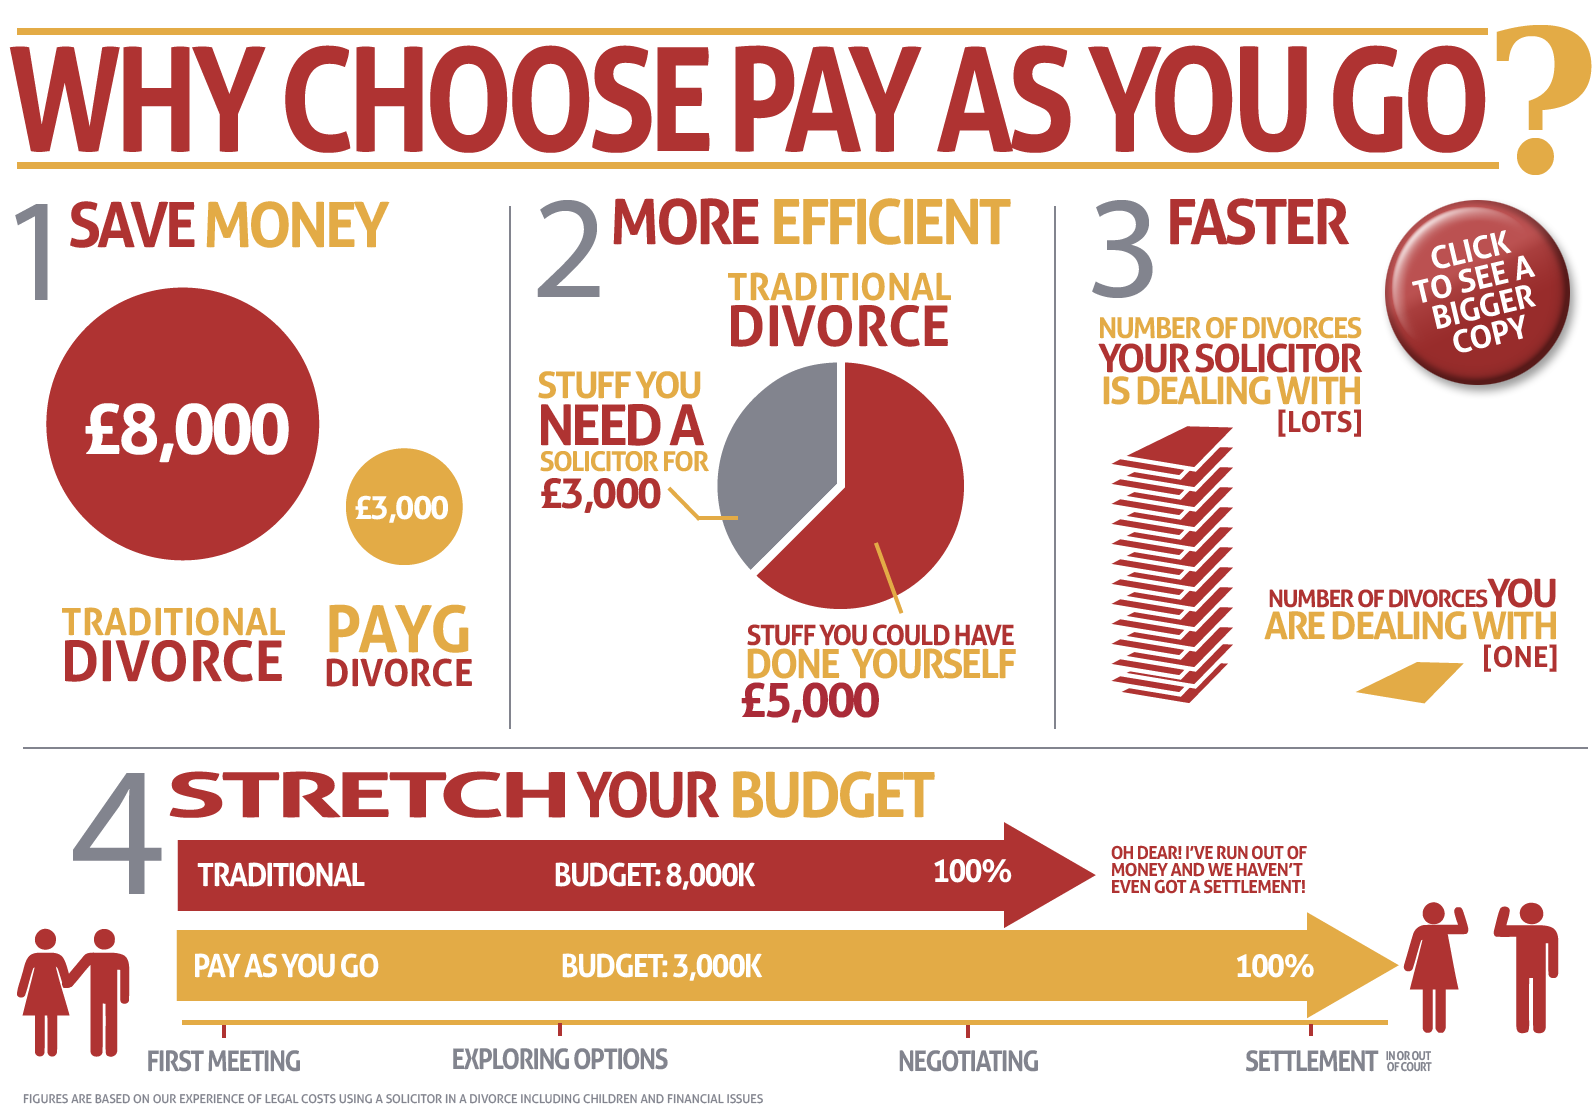 Cheap Divorce. Cost of divorce. How Pay As You Go Divorce is cheaper than traditional divorce